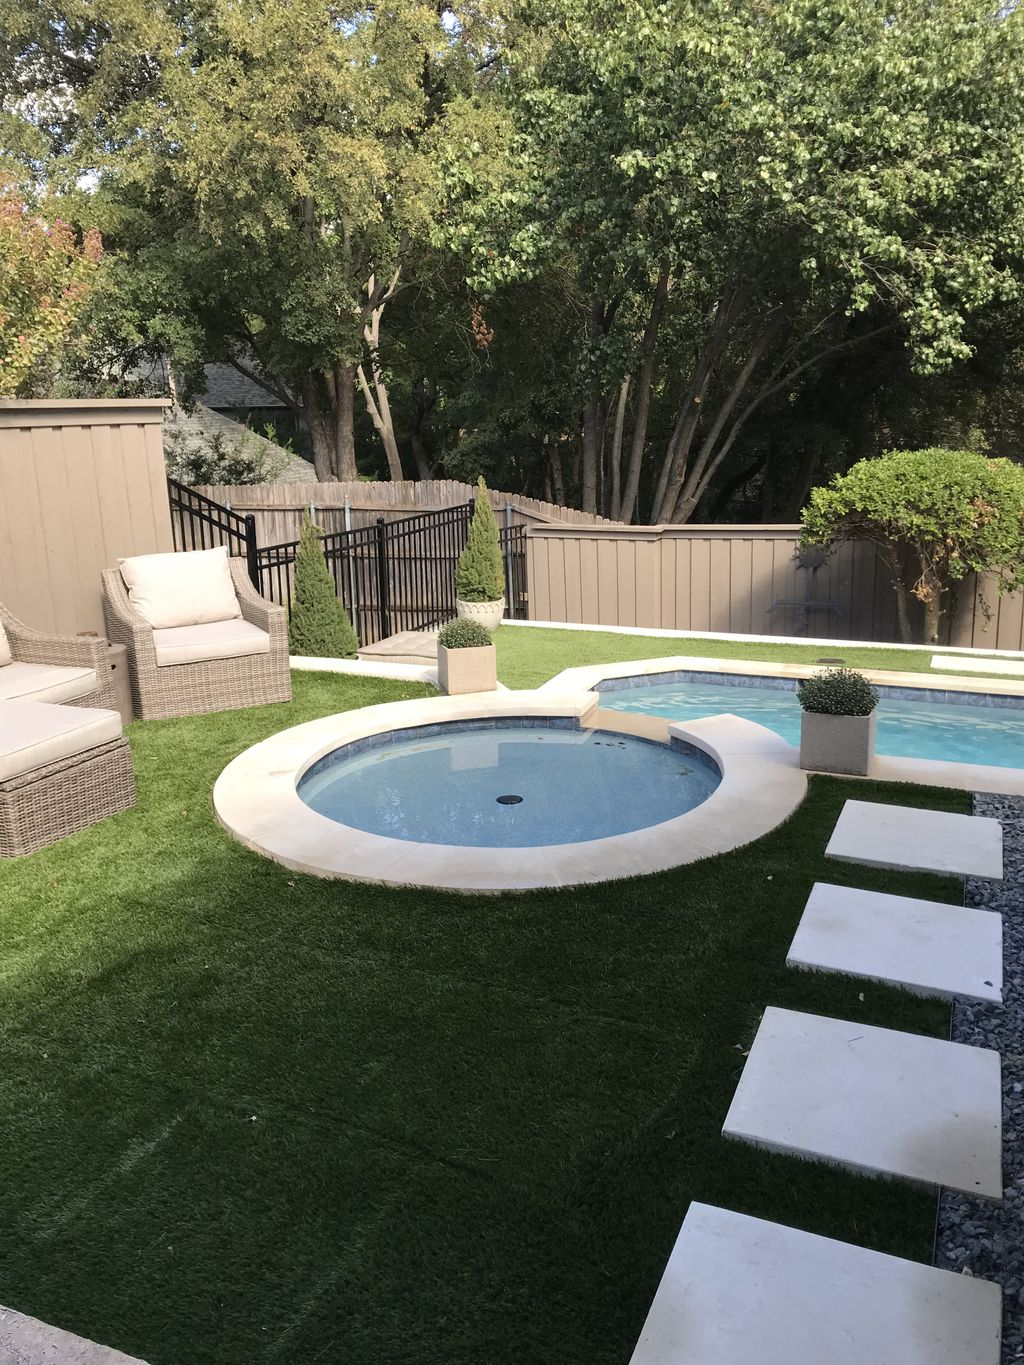 Artificial turf on pool remodel